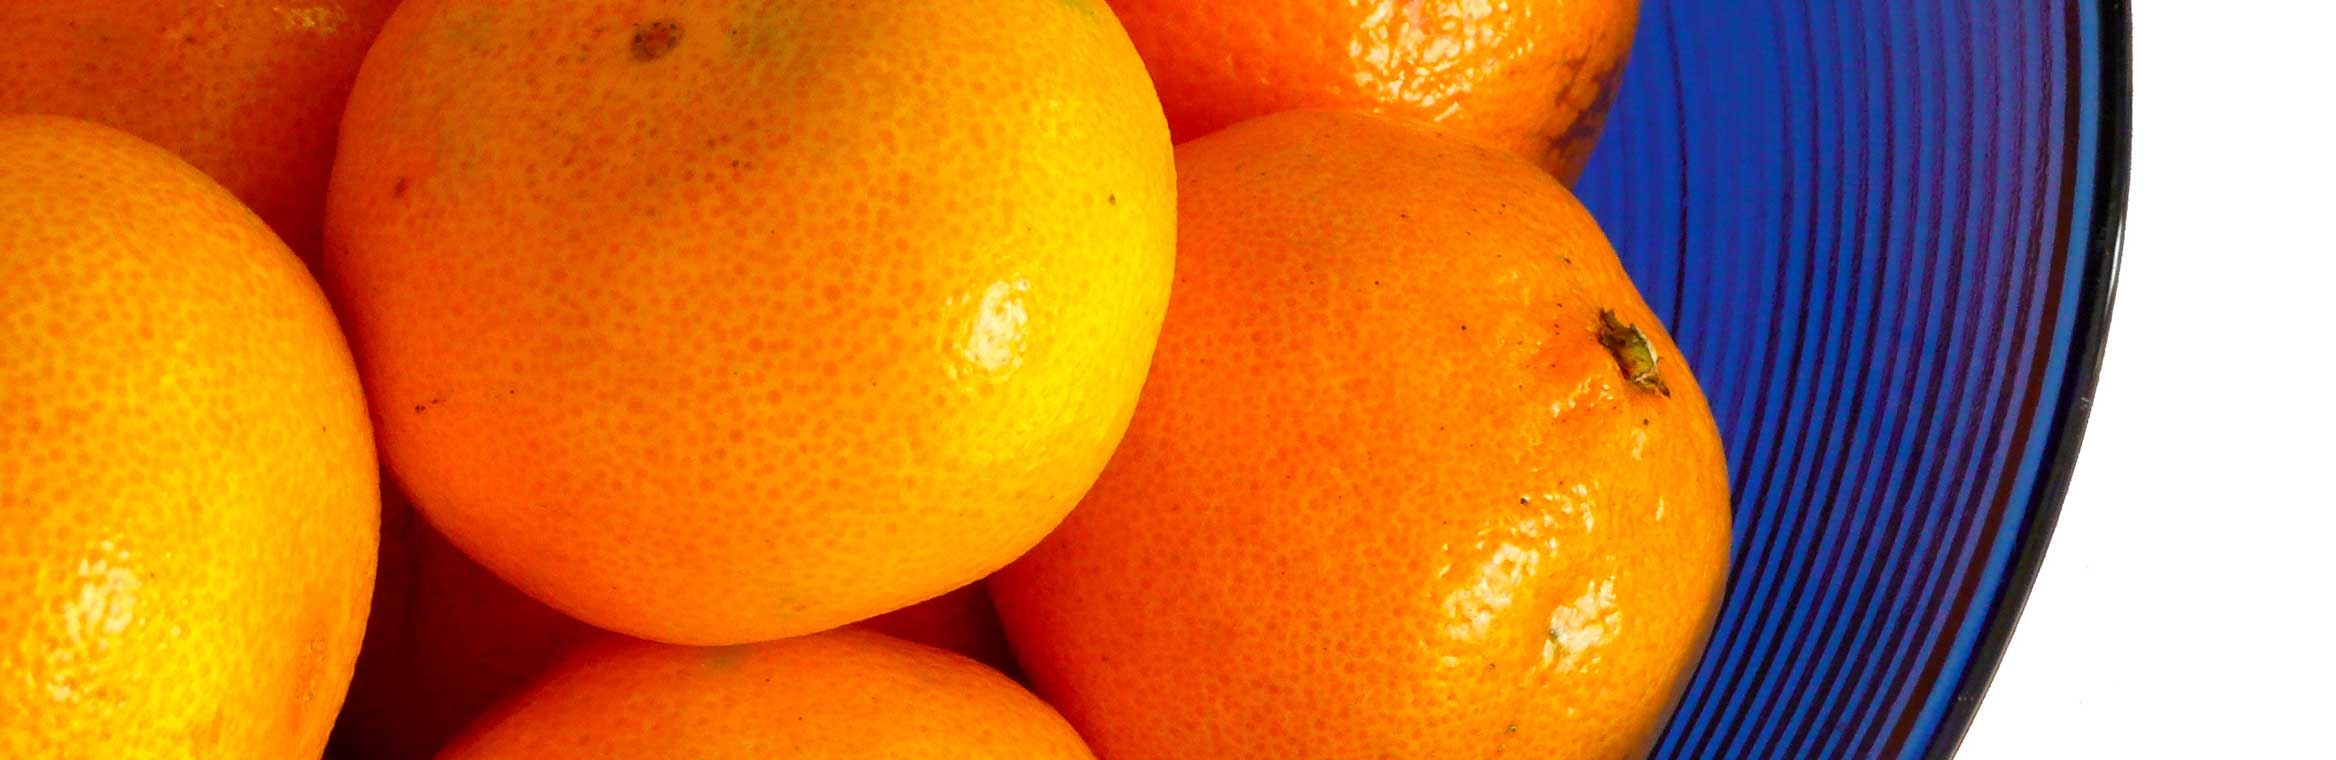 a close up of a bunch of oranges